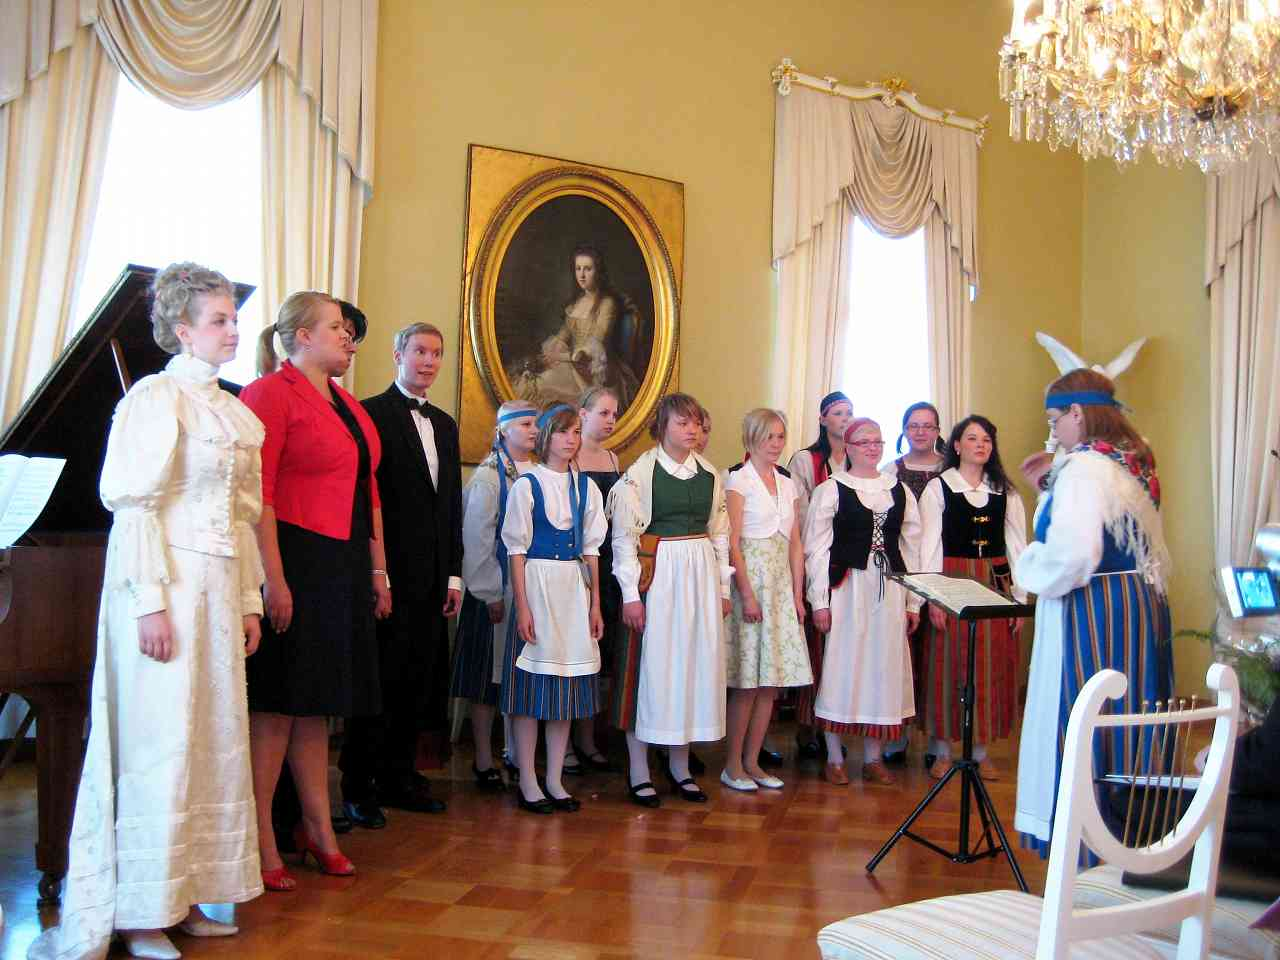 9th Suzuki Voice Workshop, Finland 2010</p>Opening at Government Banquet Hall&#8221; class=&#8221;pic-c-xlg&#8221; /></p> </div> <div class=